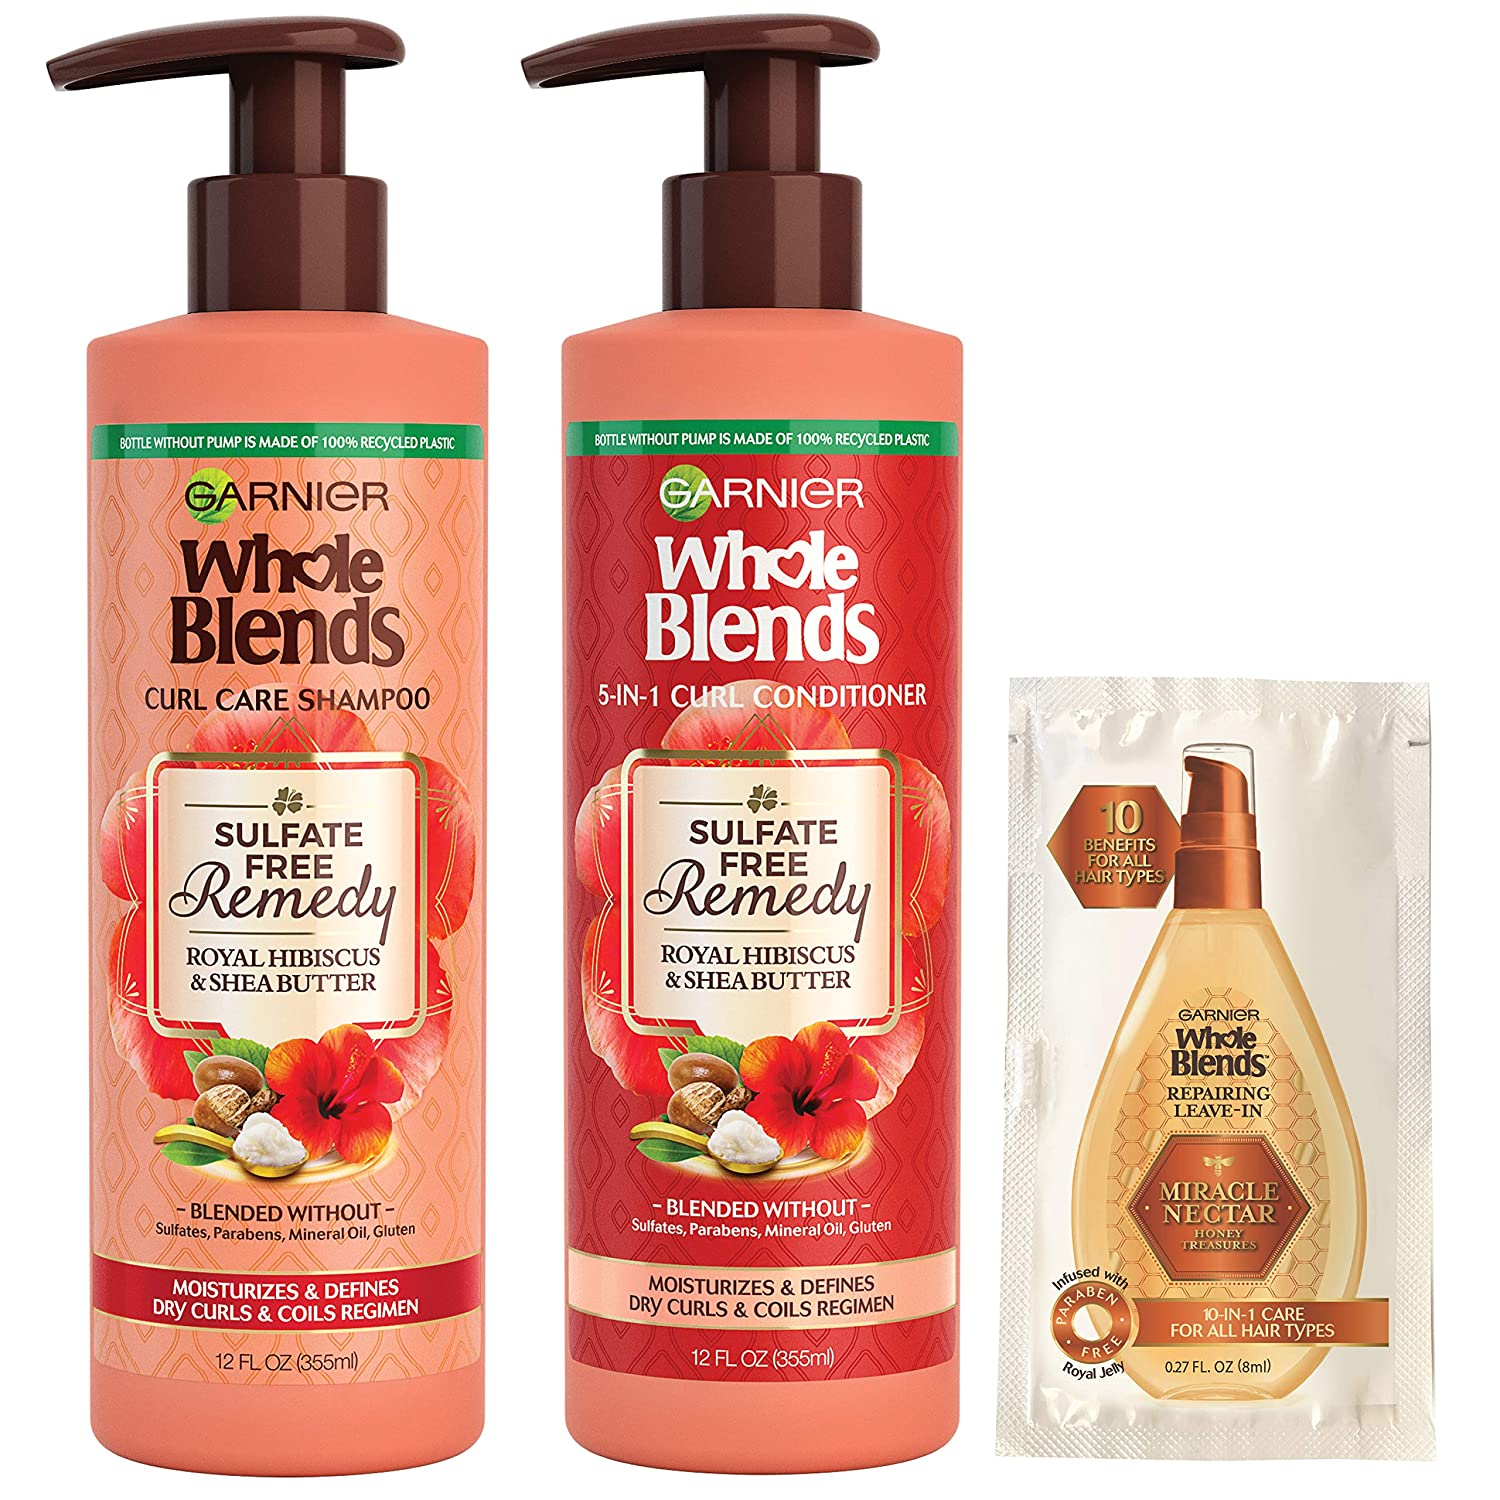 Garnier Haircare Whole Blends Sulfate Free Remedy Hibiscus and Shea Shampoo and Conditioner, for Dry Curls, with Sulfate-Free Leave-In Miracle Nectar Sample Packette (Packaging May Vary)